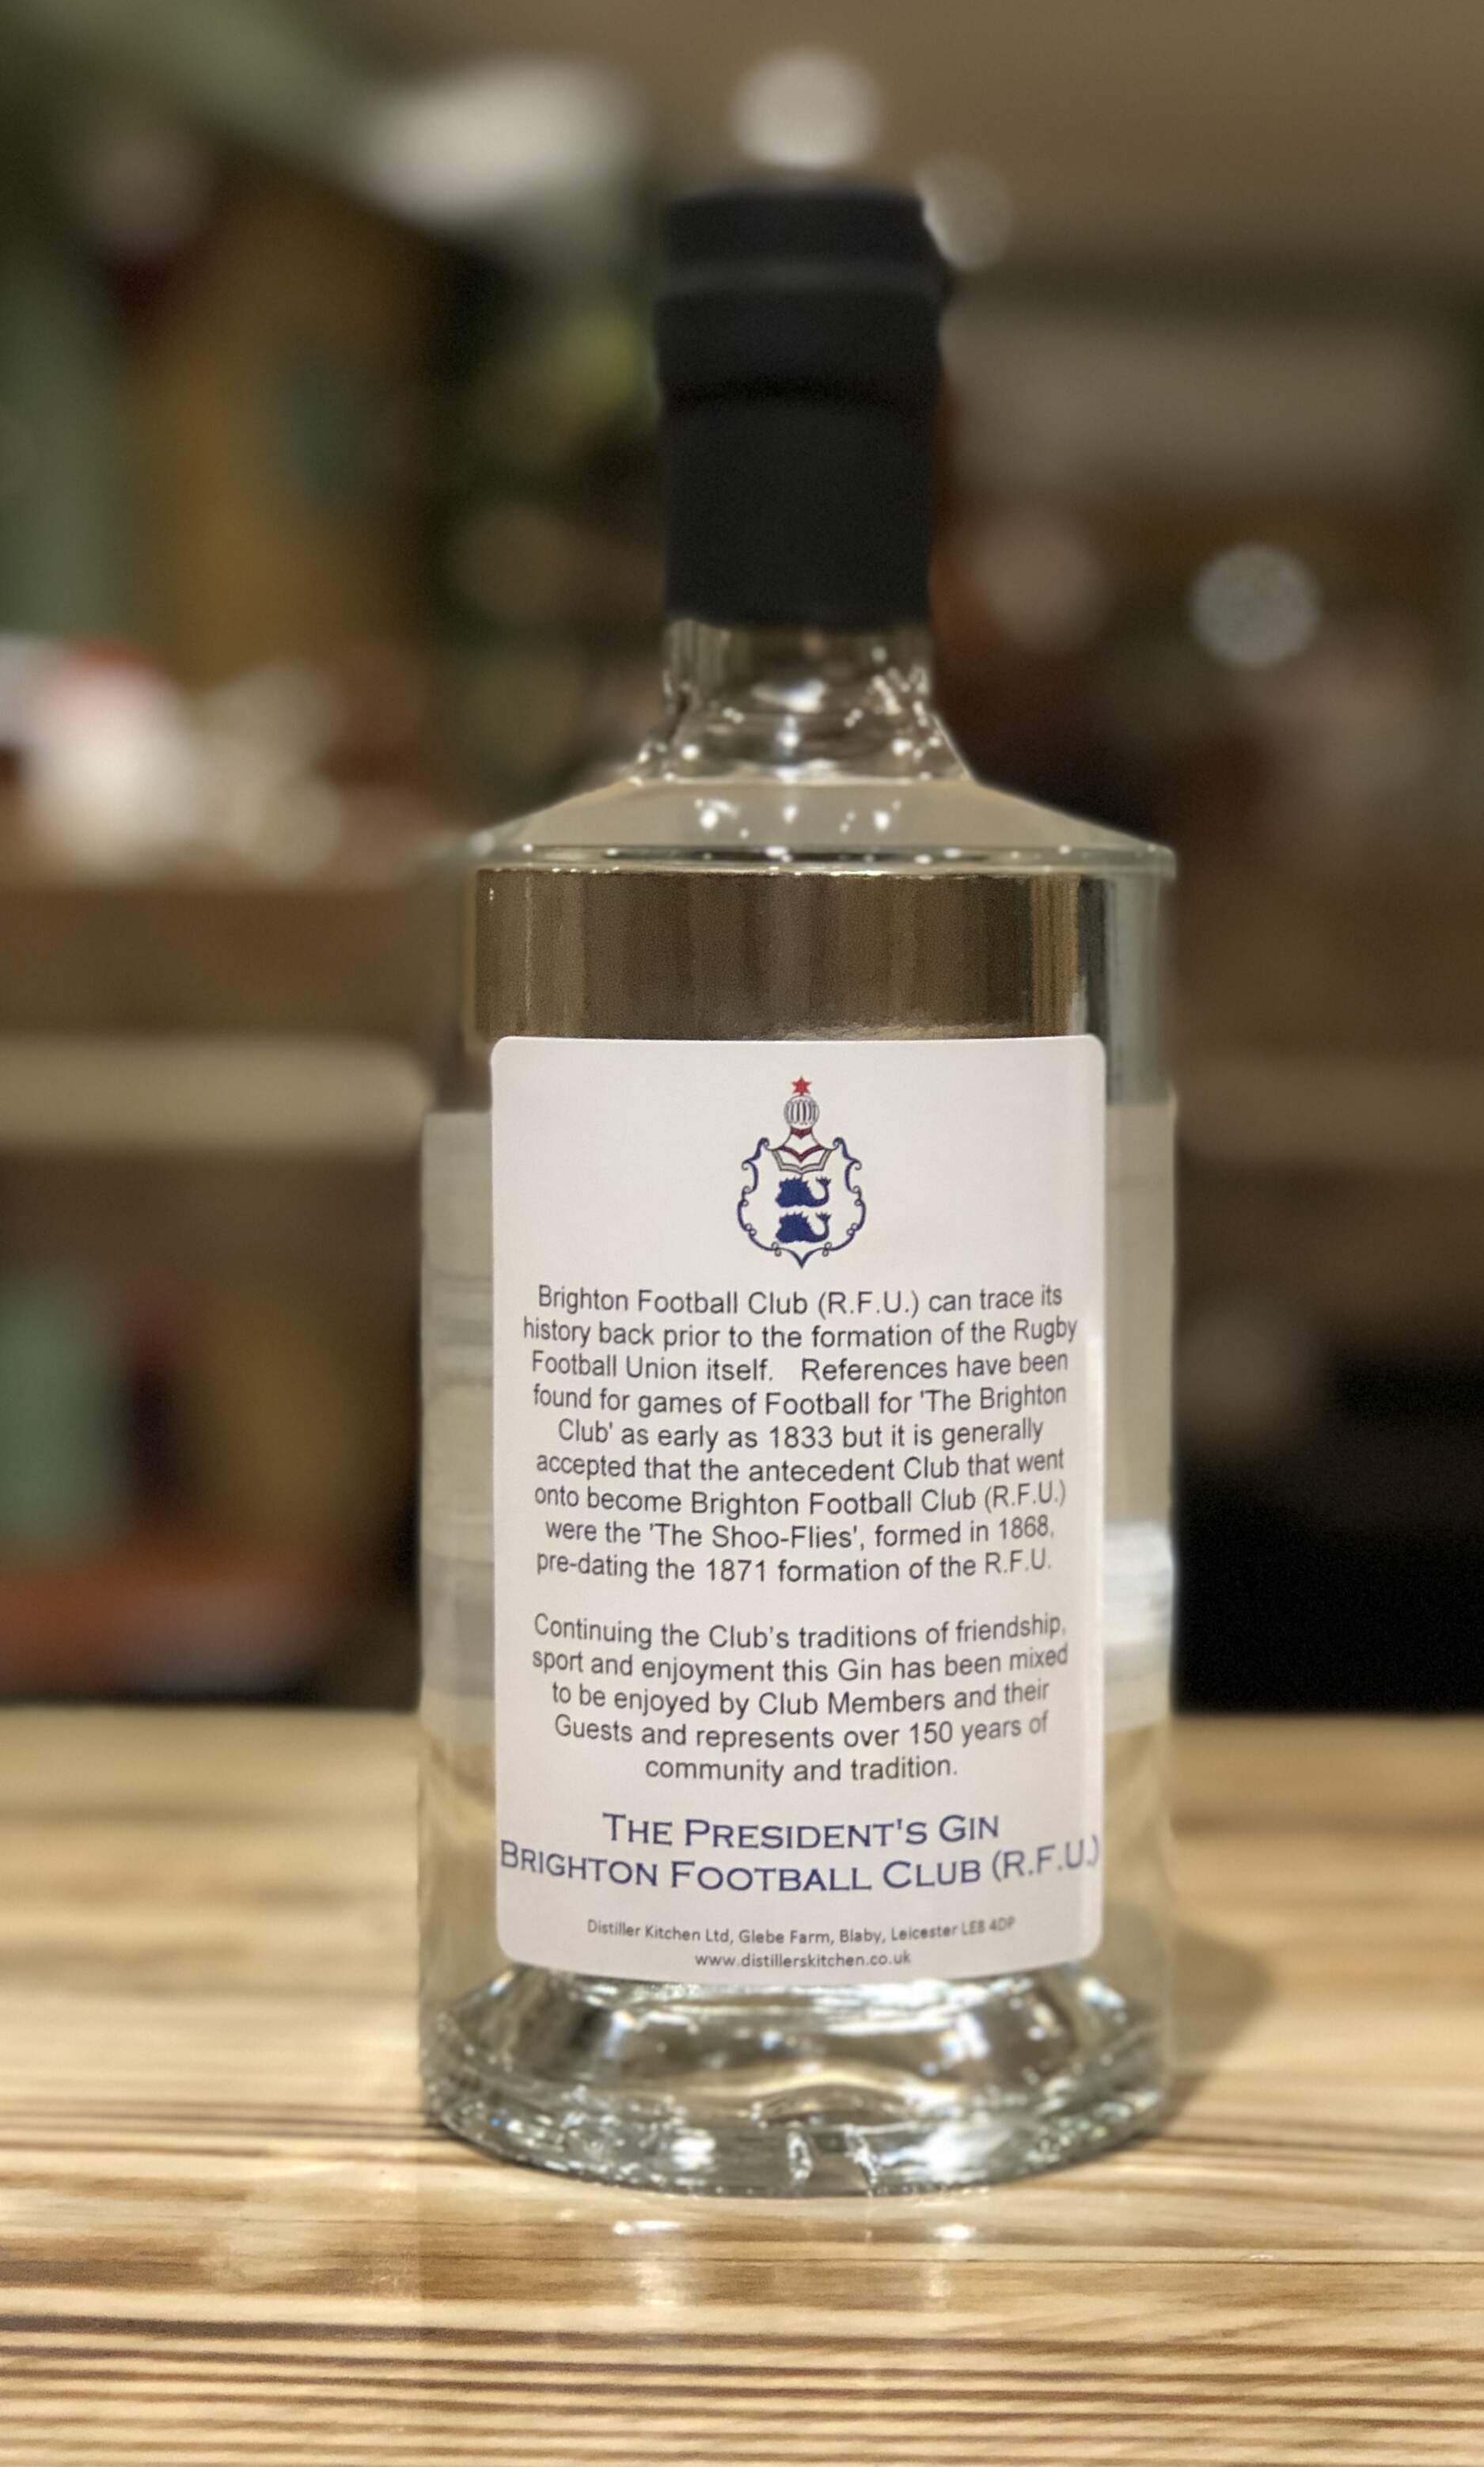 Brighton Football Club (R.F.U.) 'President's Gin'